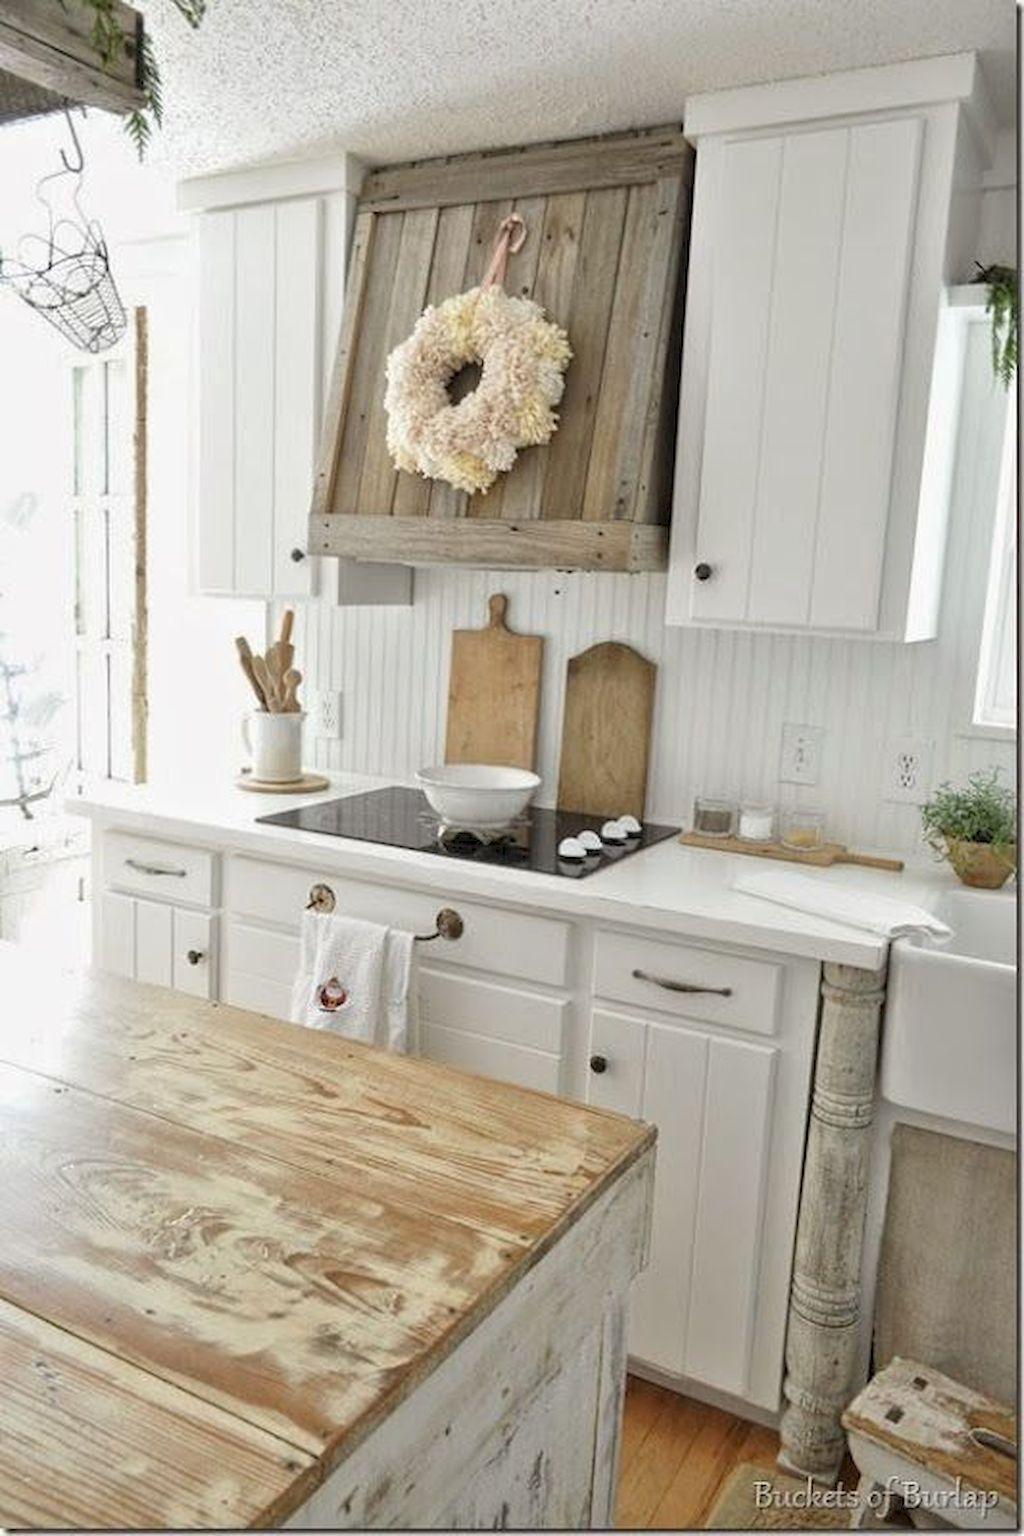 Awesome Rustic Farmhouse Kitchen Cabinets Décor Ideas Of Your Dreams ...